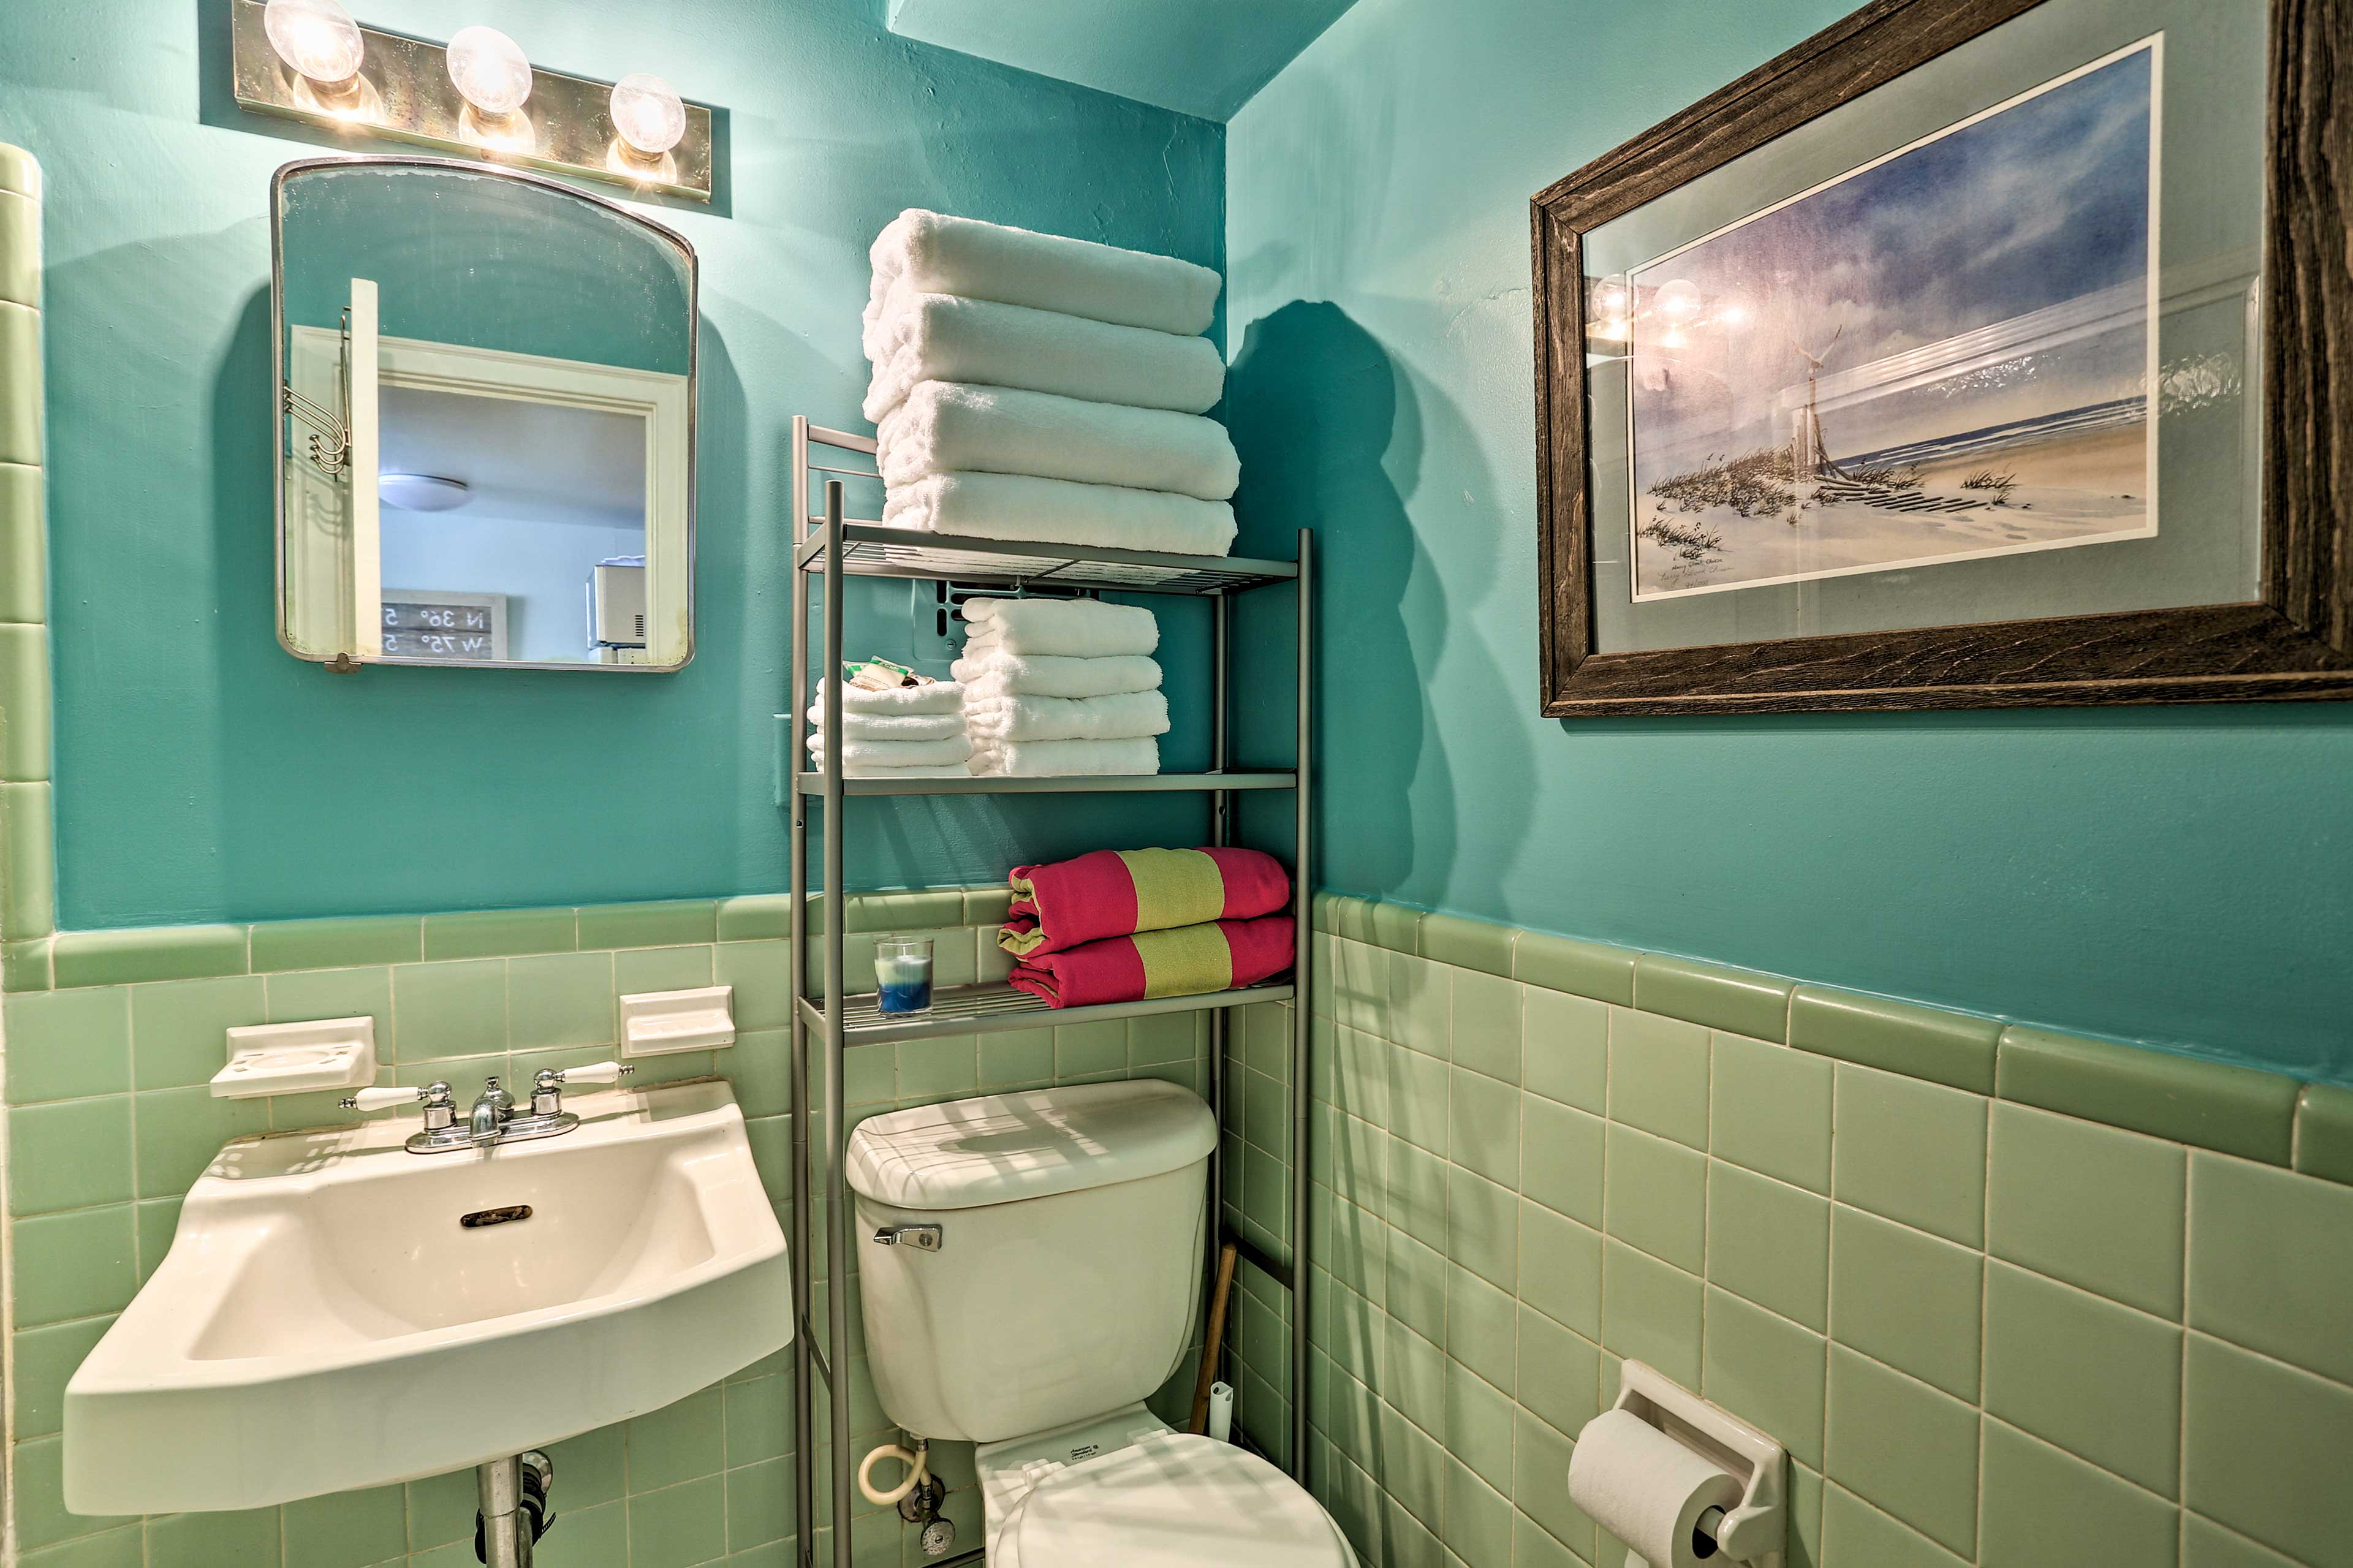 Find fresh towels awaiting your arrival.